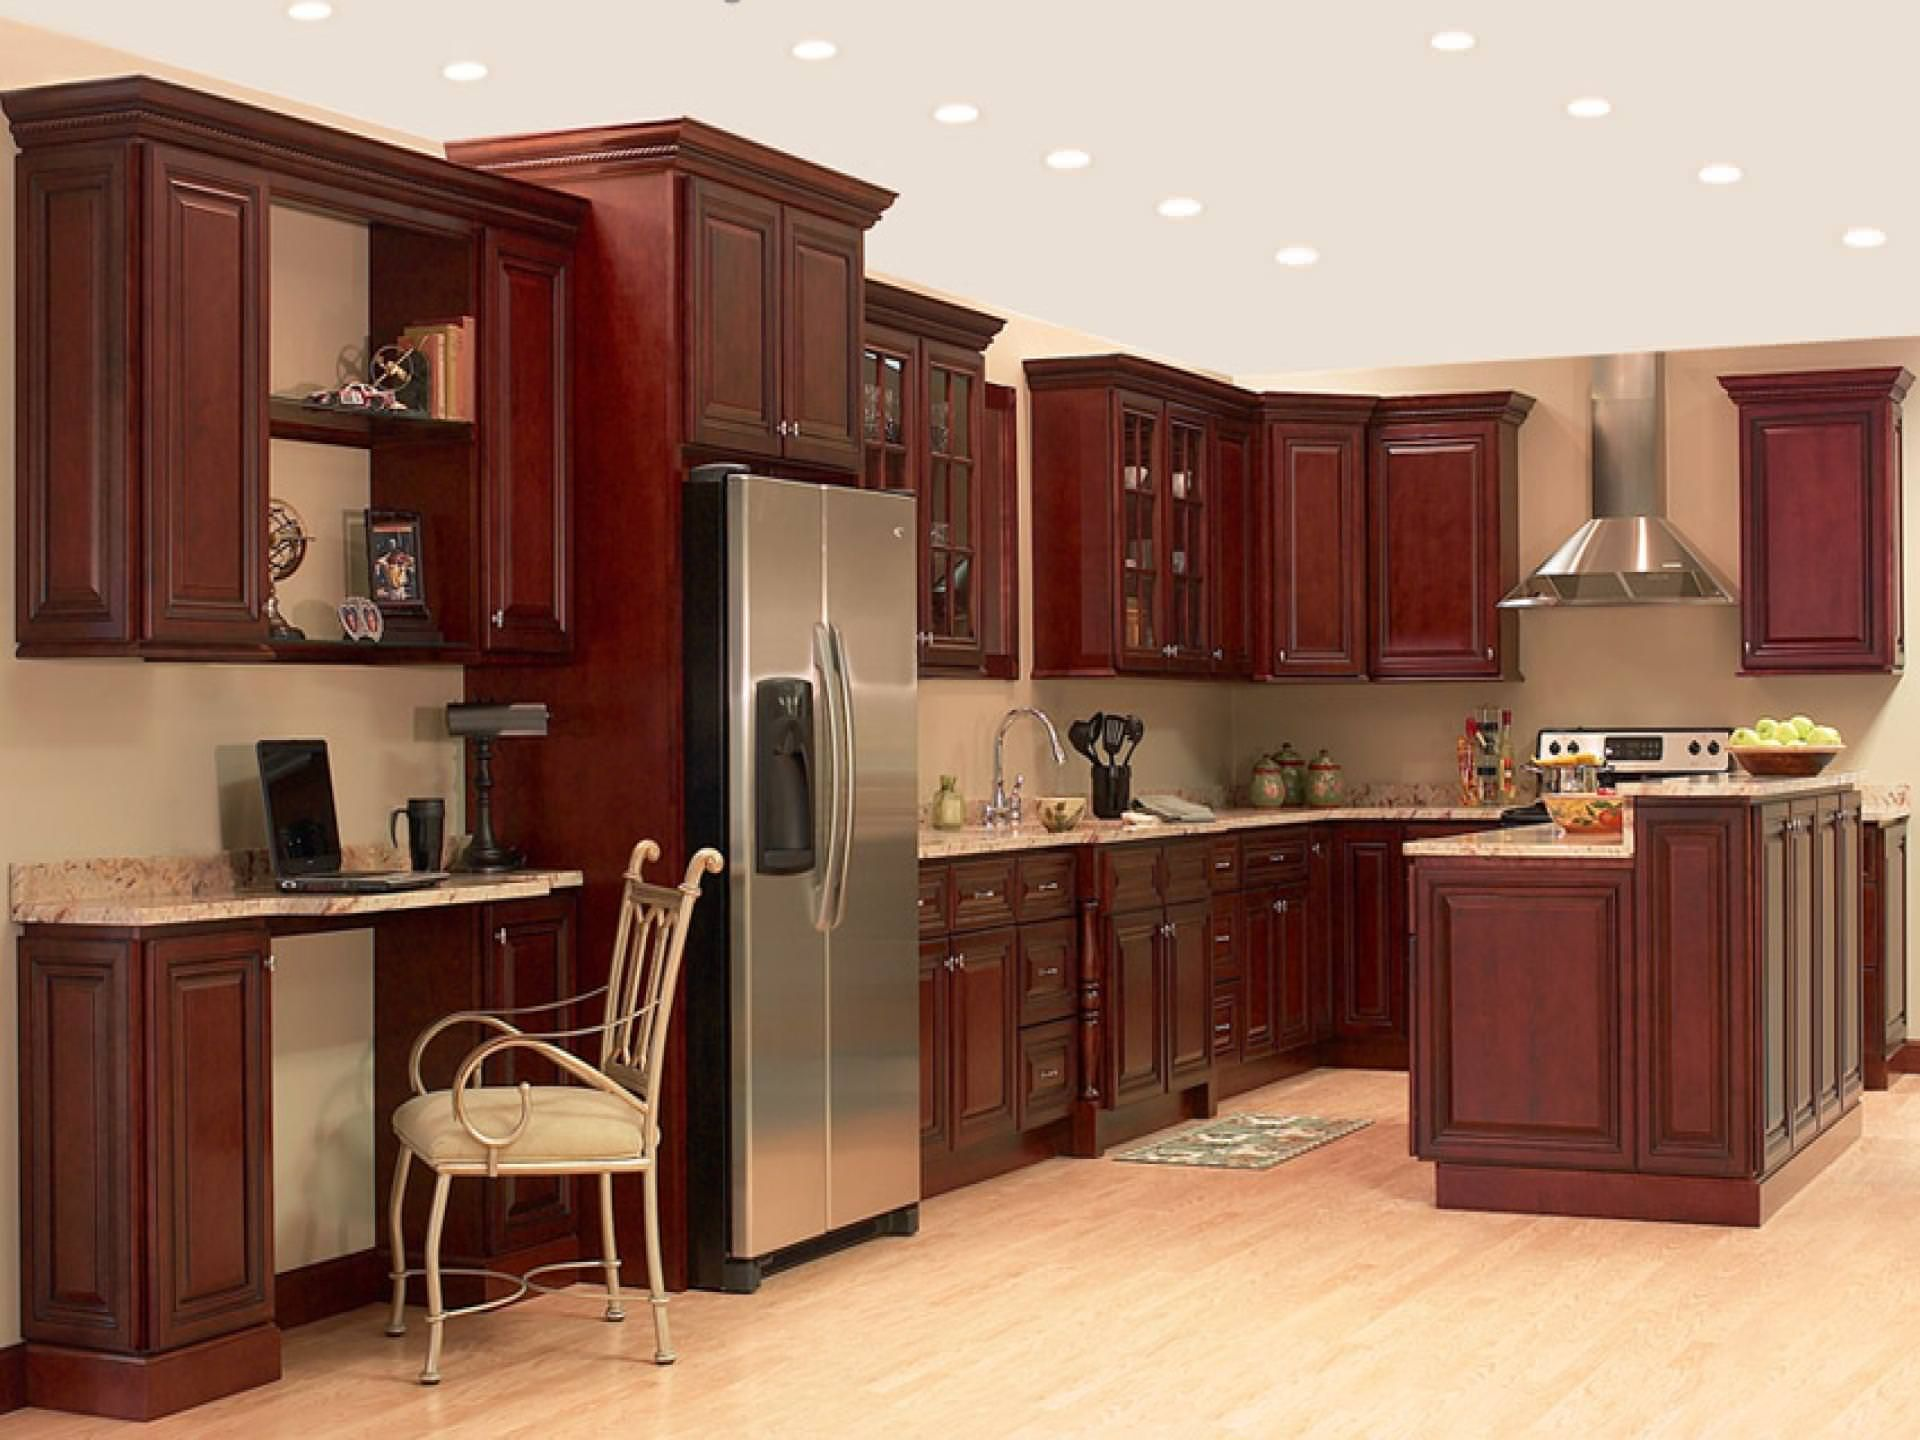 Cherry Kitchen Cabinets The Home Depot Ideas In 2020 Kitchen Design Home Depot Kitchen Kitchen Designs Layout